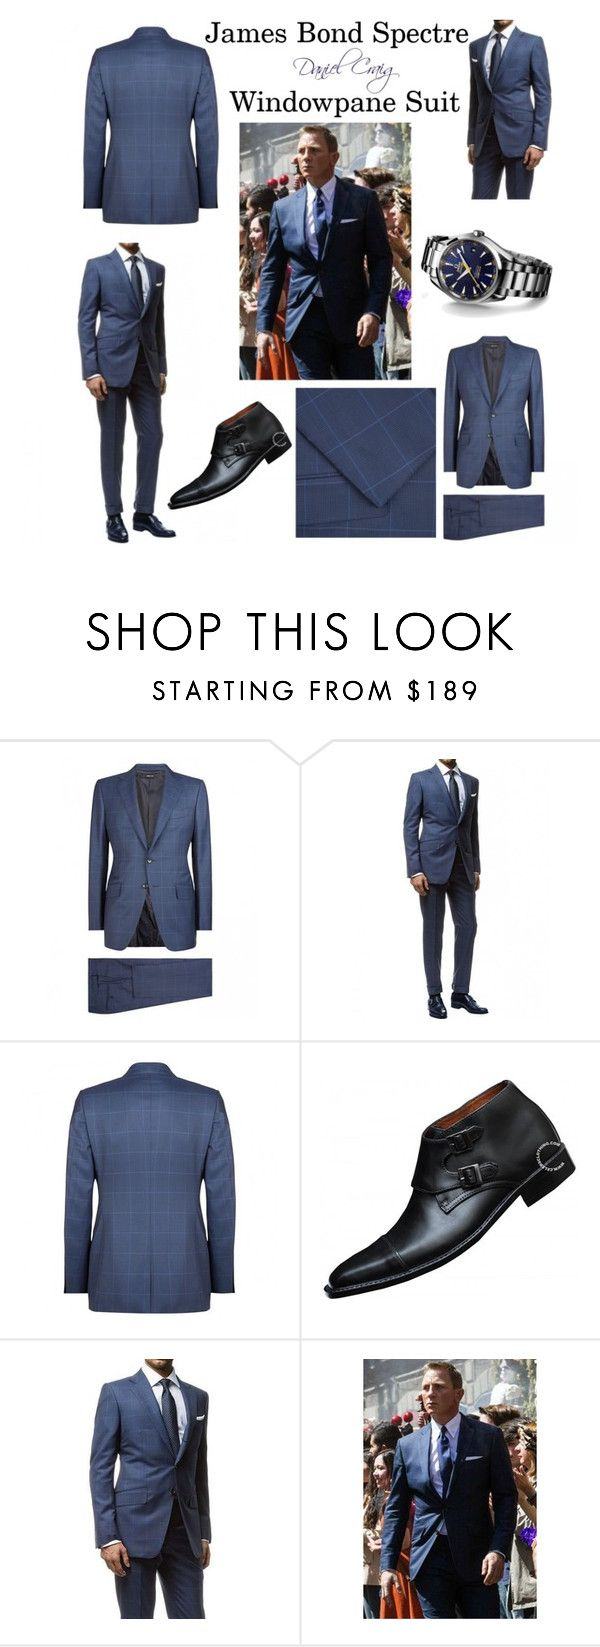 """James Bond Spectre Windowpane Suit By Daniel Craig"" by celebsclothing ❤ liked on Polyvore featuring James Bond 007"